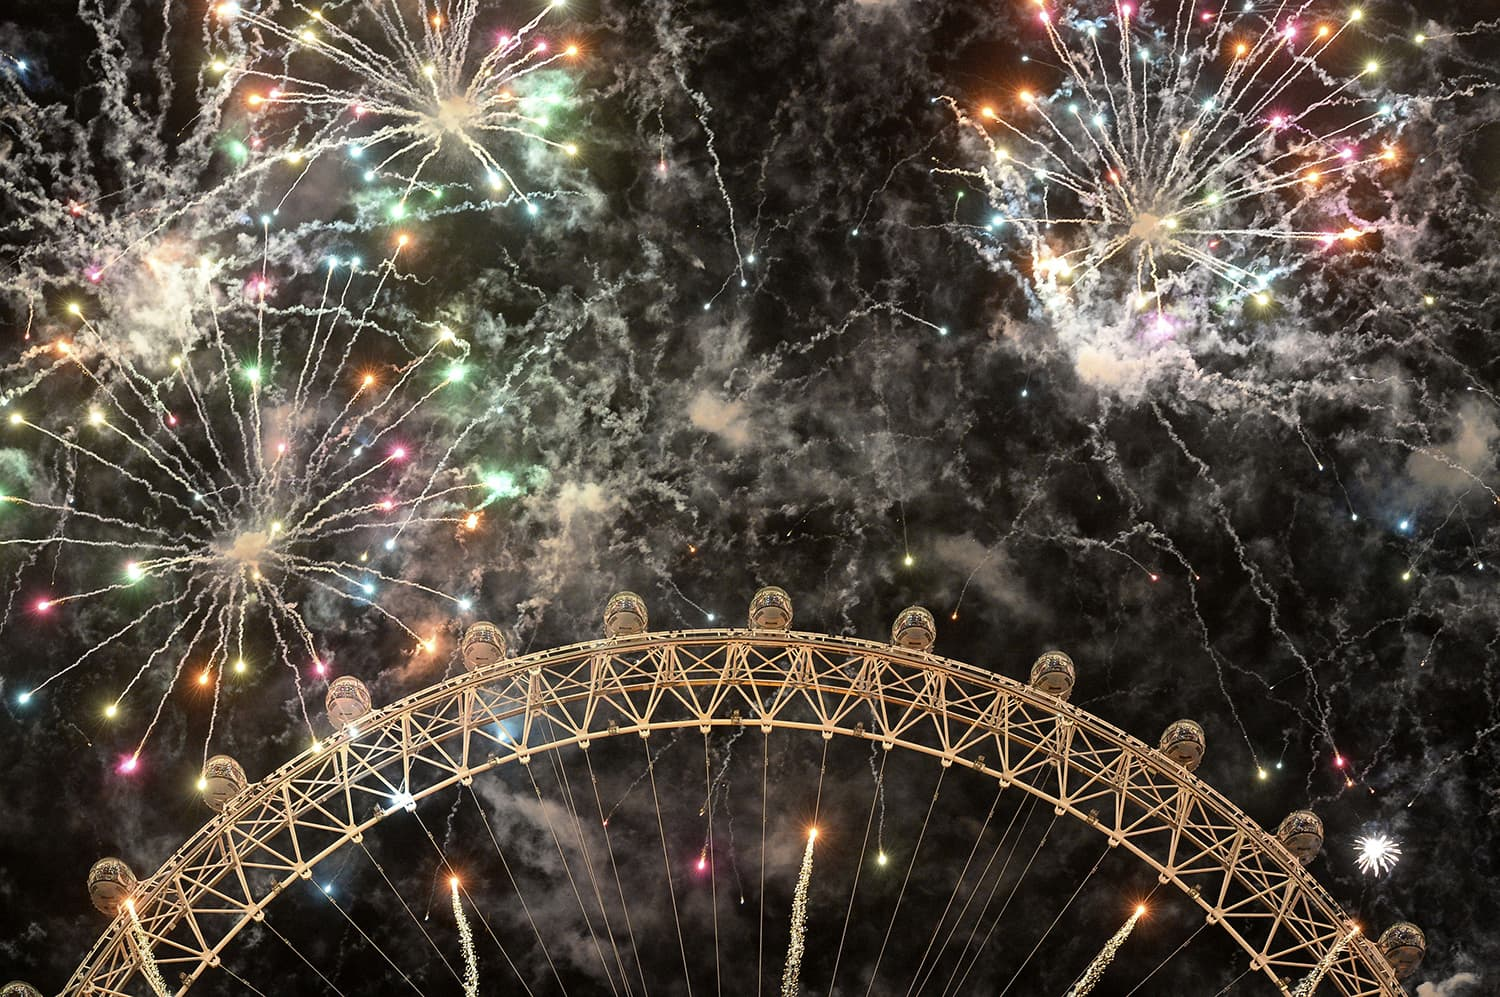 Fireworks light up the sky over the London Eye in central London during the New Year celebrations. — AFP